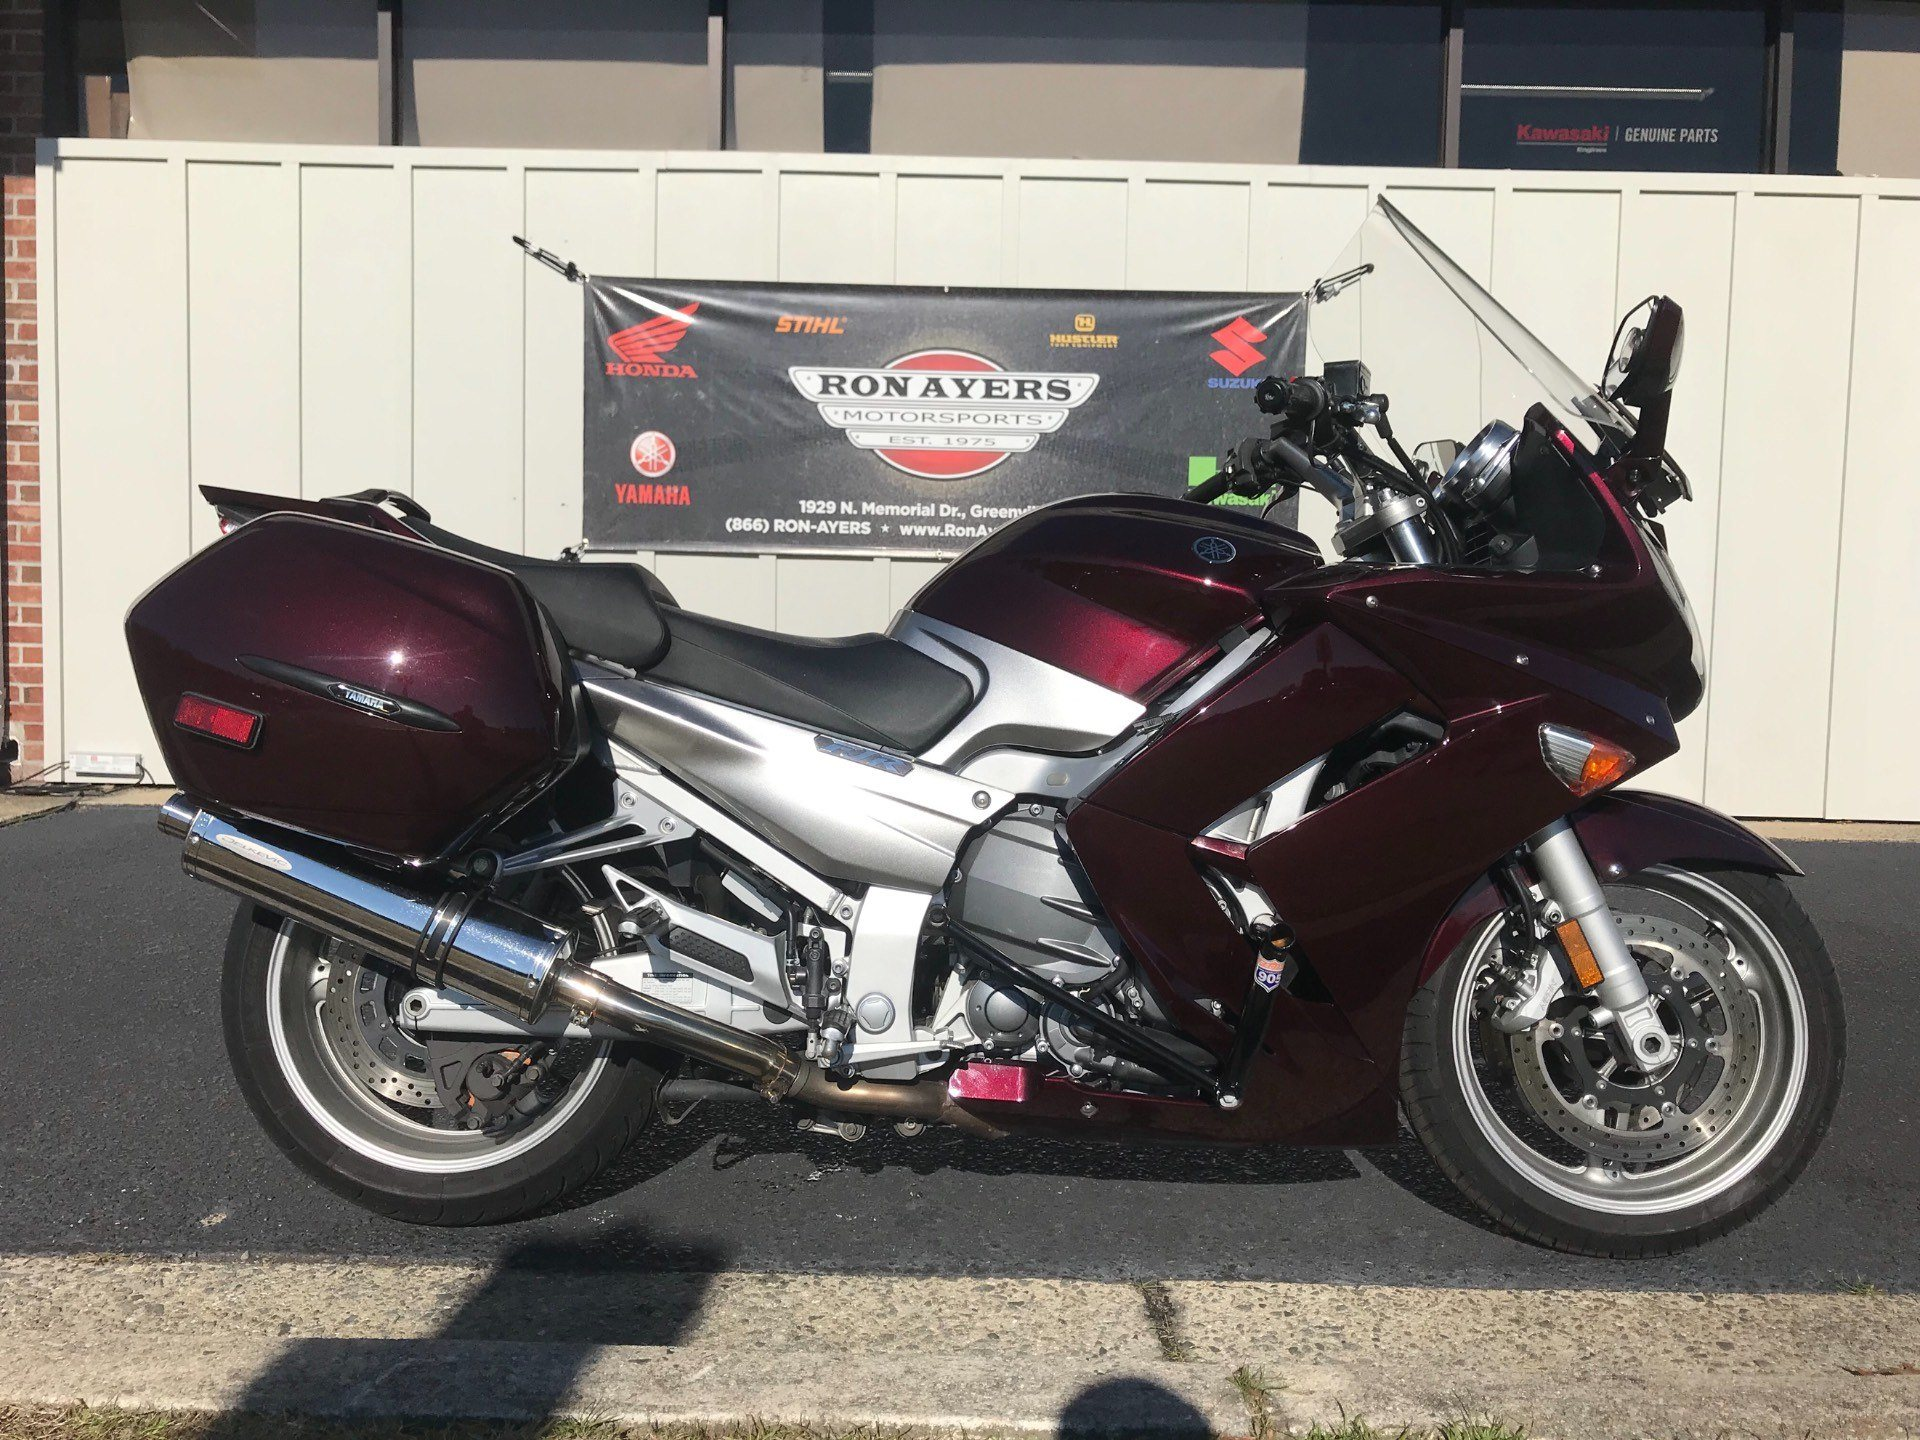 Used 2007 Yamaha Fjr 1300a Motorcycles In Greenville Nc Stock